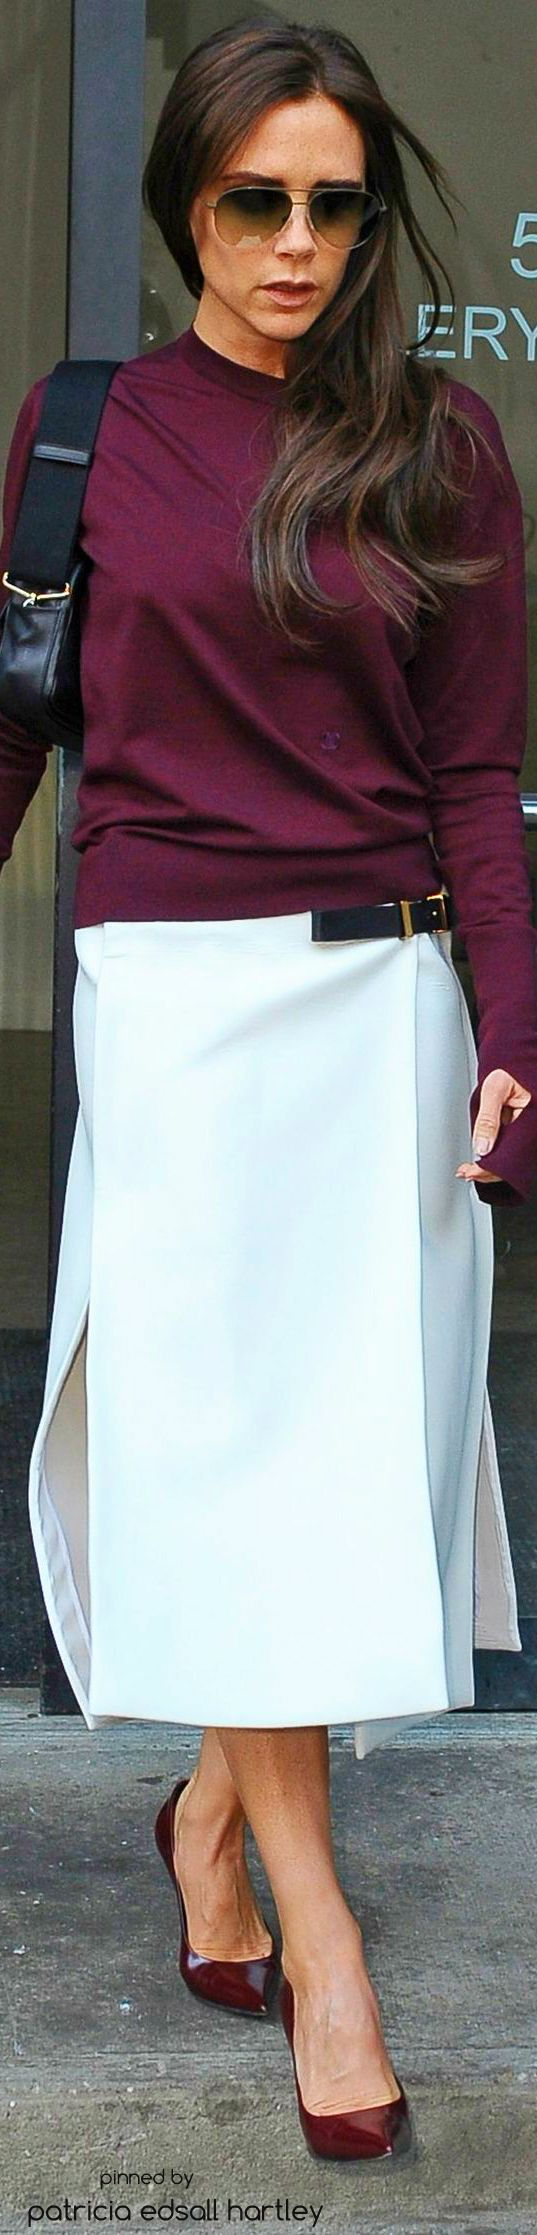 Victoria Beckham women fashion outfit clothing style apparel @roressclothes closet ideas